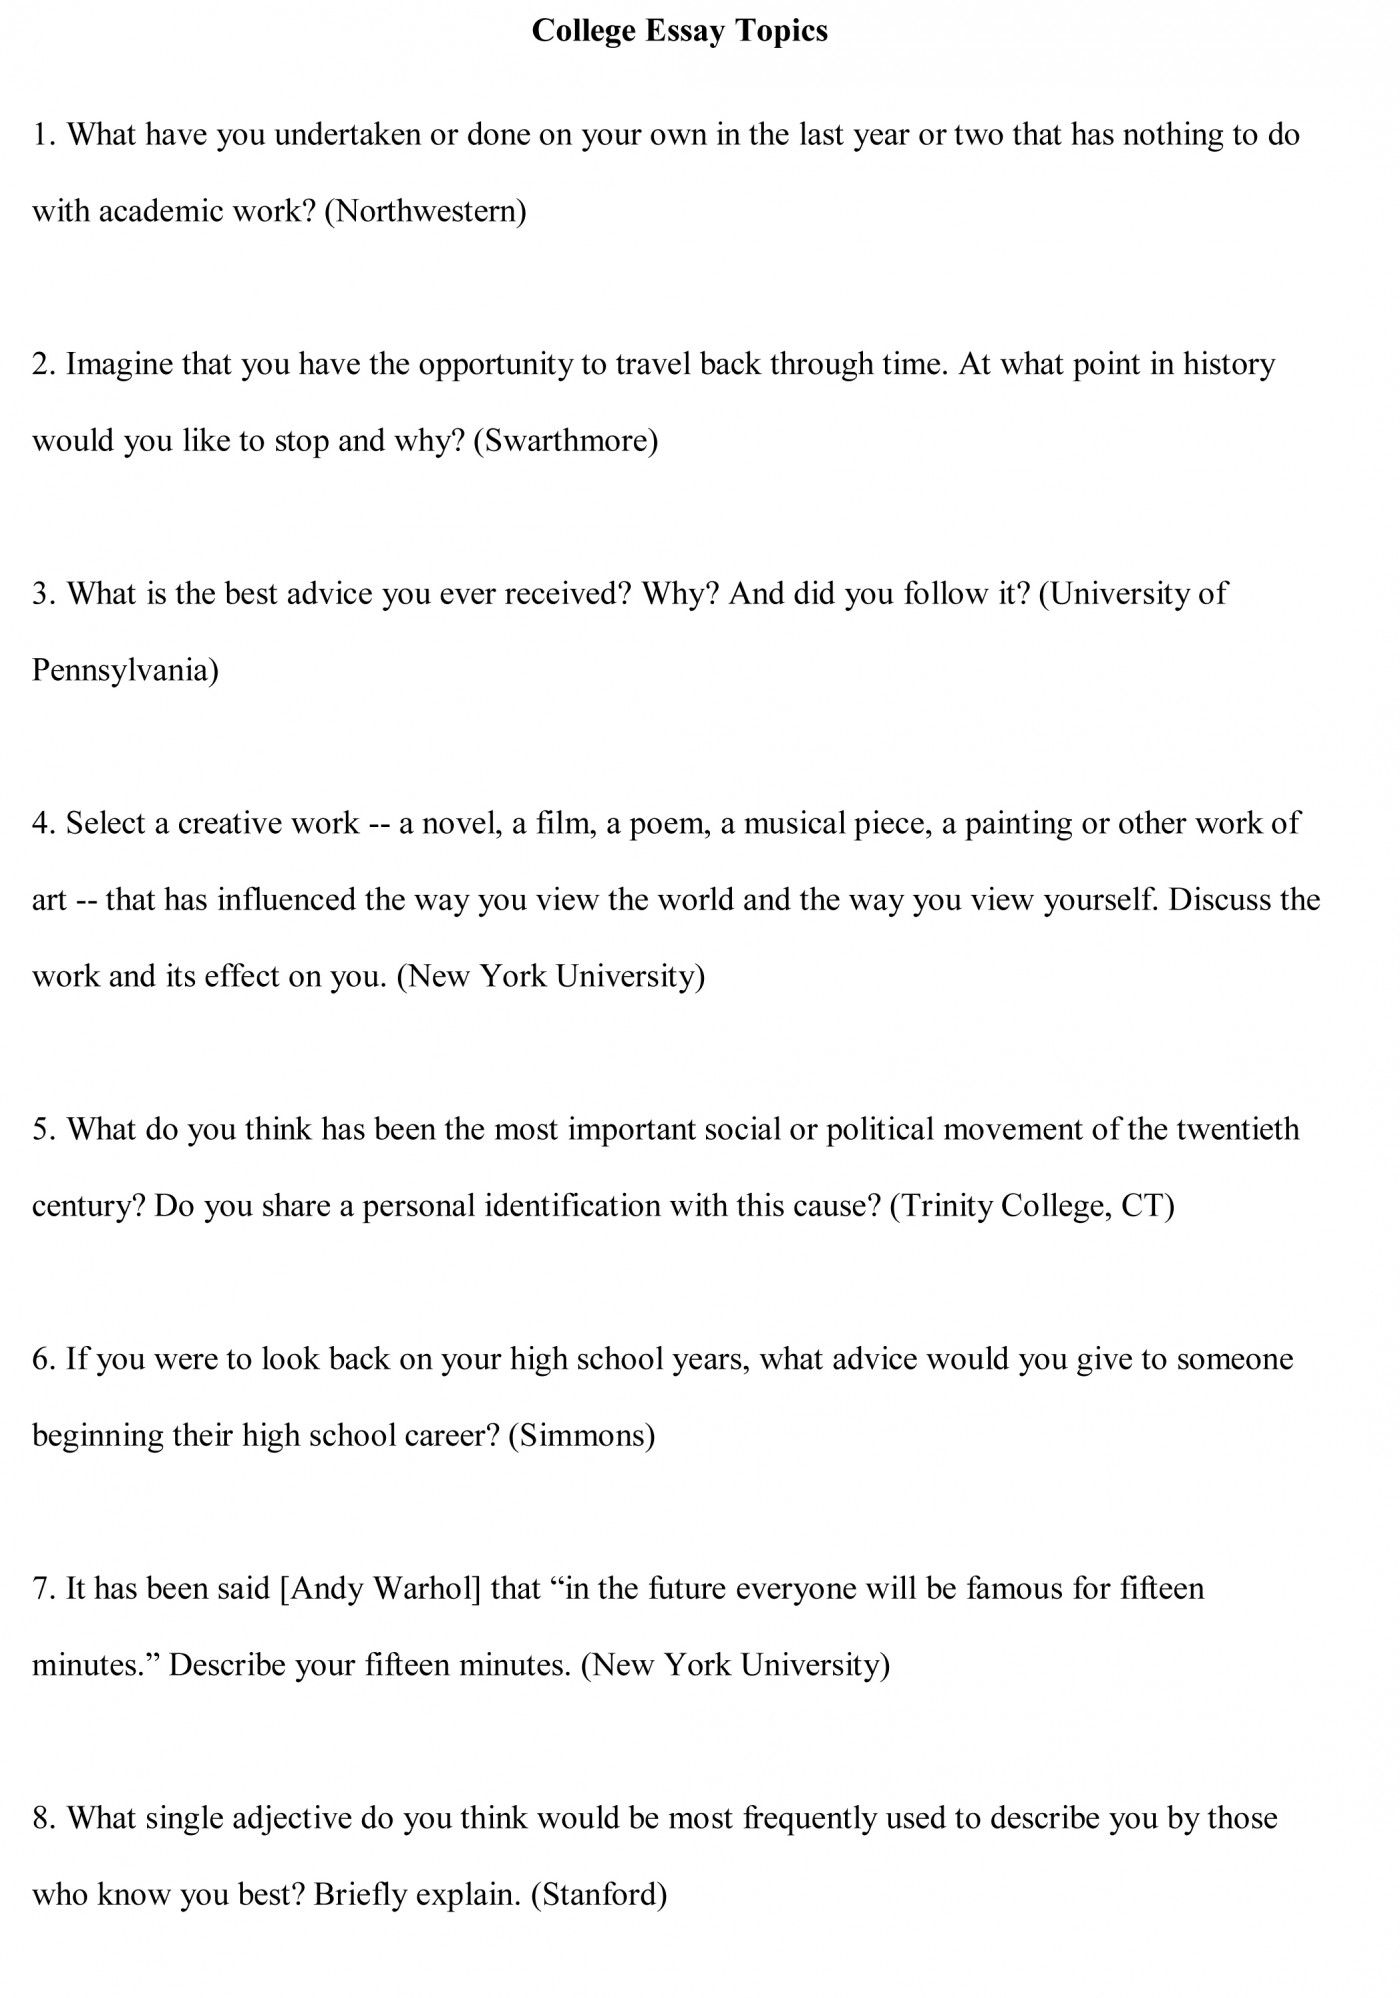 004 College Essay Topics Free Sample1 Good For Essays Top Best Prompts Great 1400